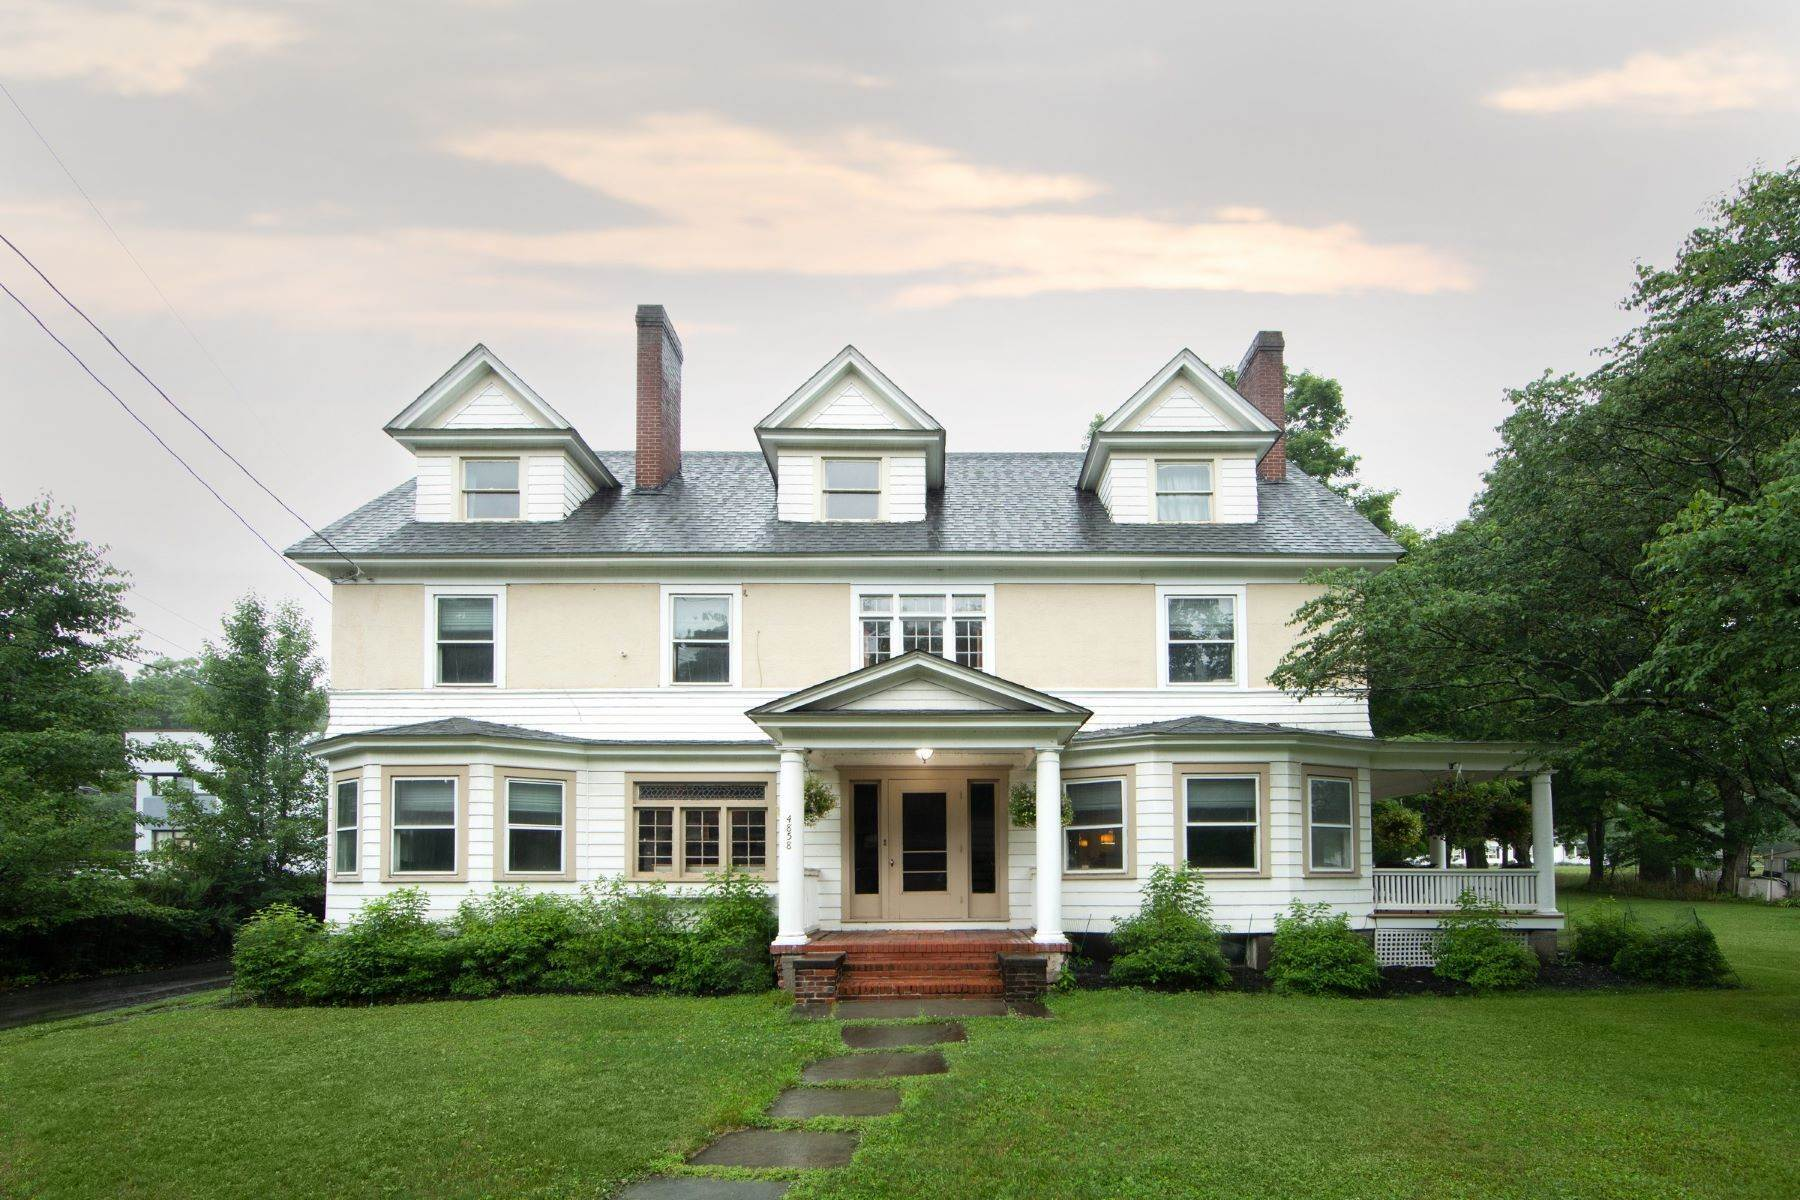 Property for Sale at The Jeffersonian Bed and Breakfast 4858 State Route 52 Jeffersonville, New York 12748 United States